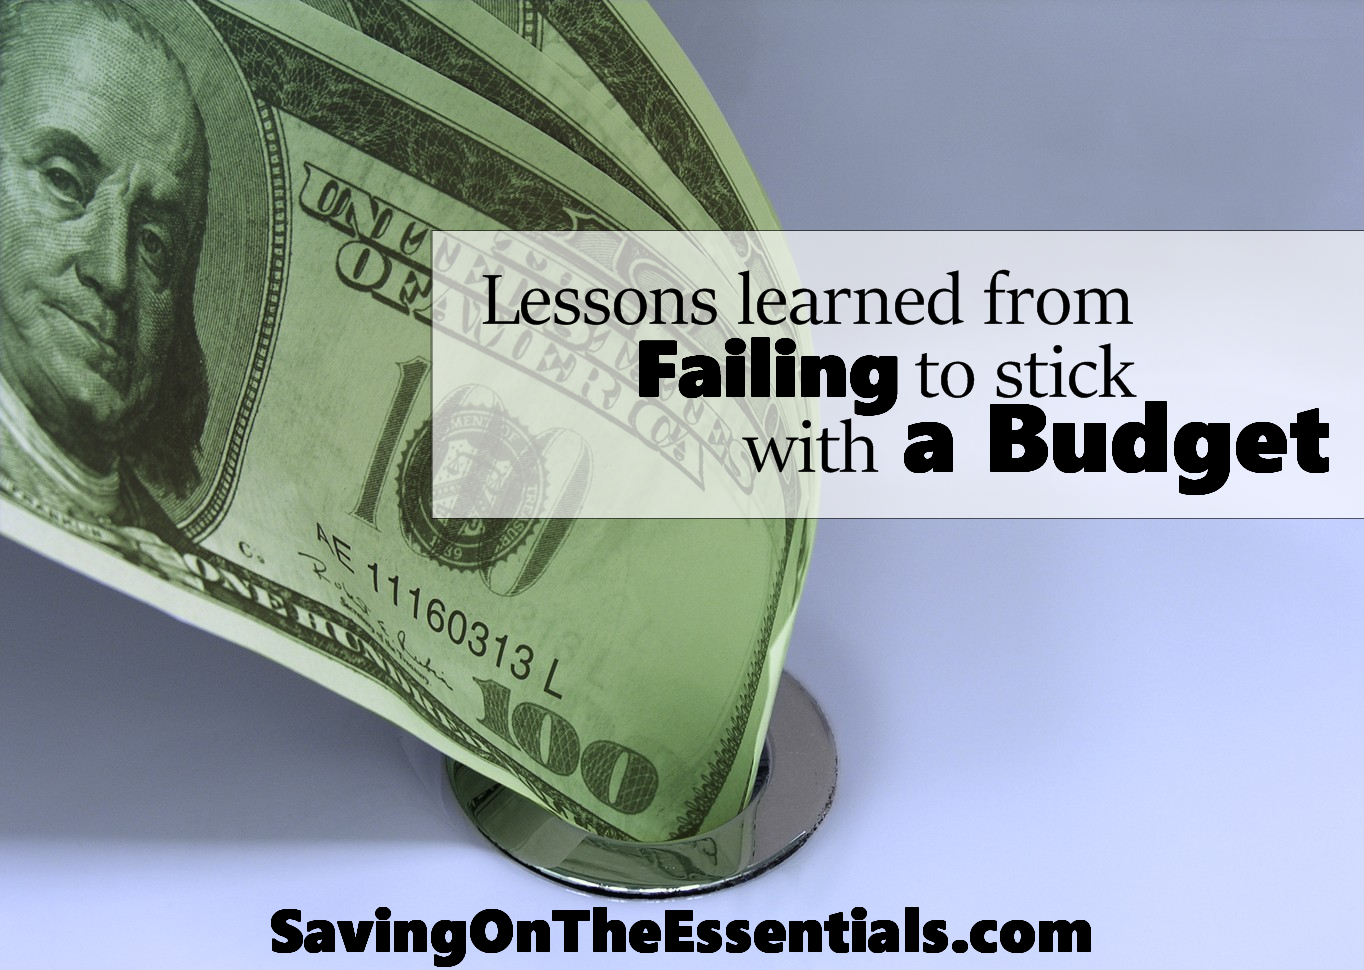 Lessons learned from Failing to stick with a Budget